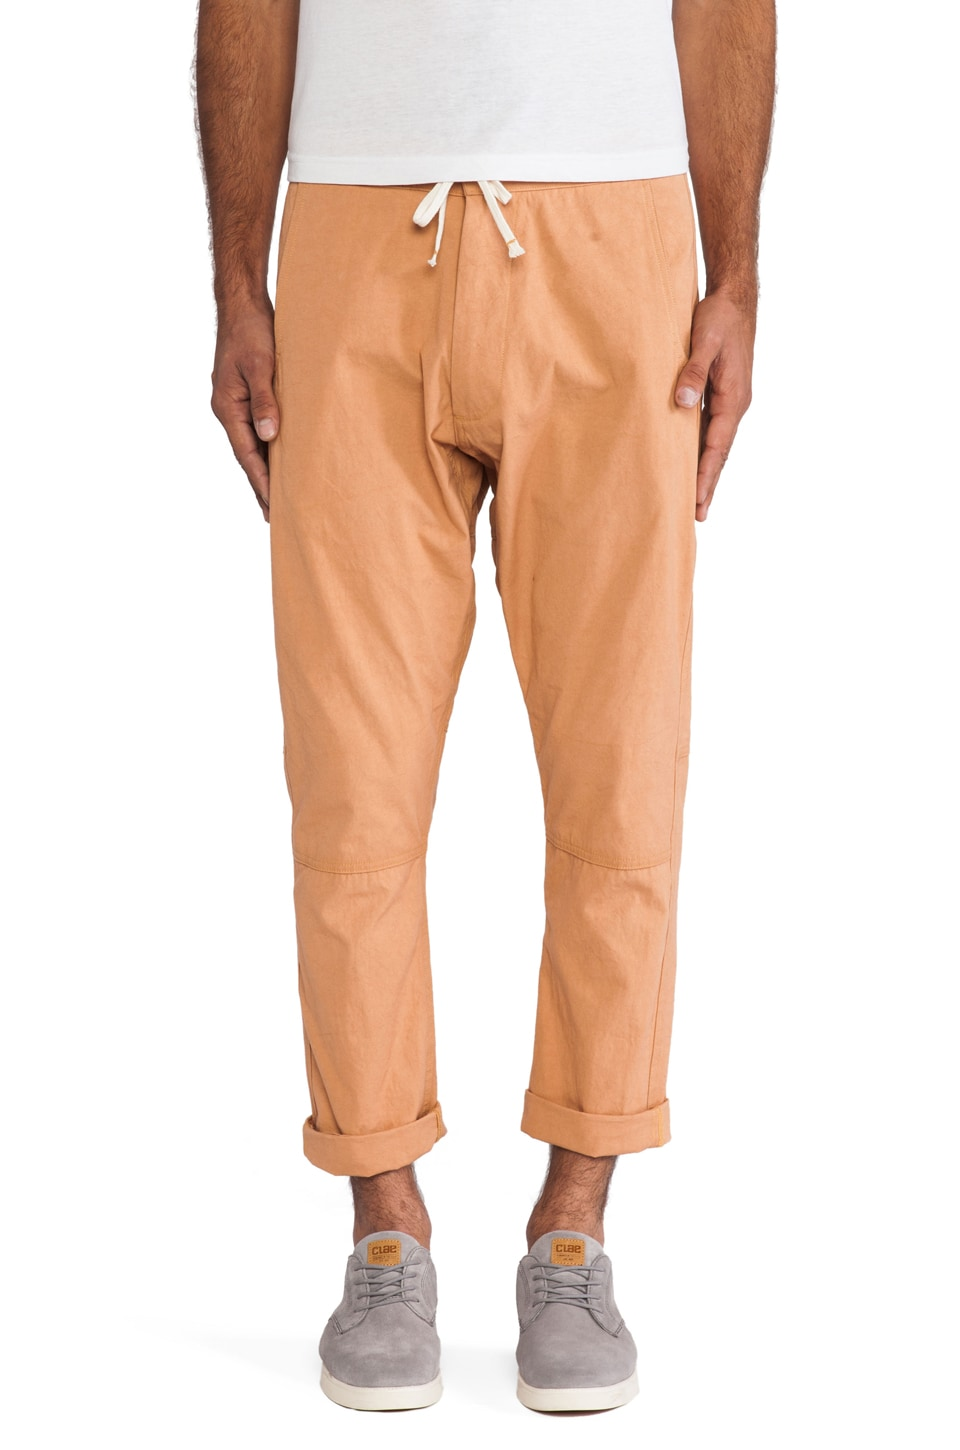 AXS Folk Technology Mountaineer Grunge Pant in Salmon